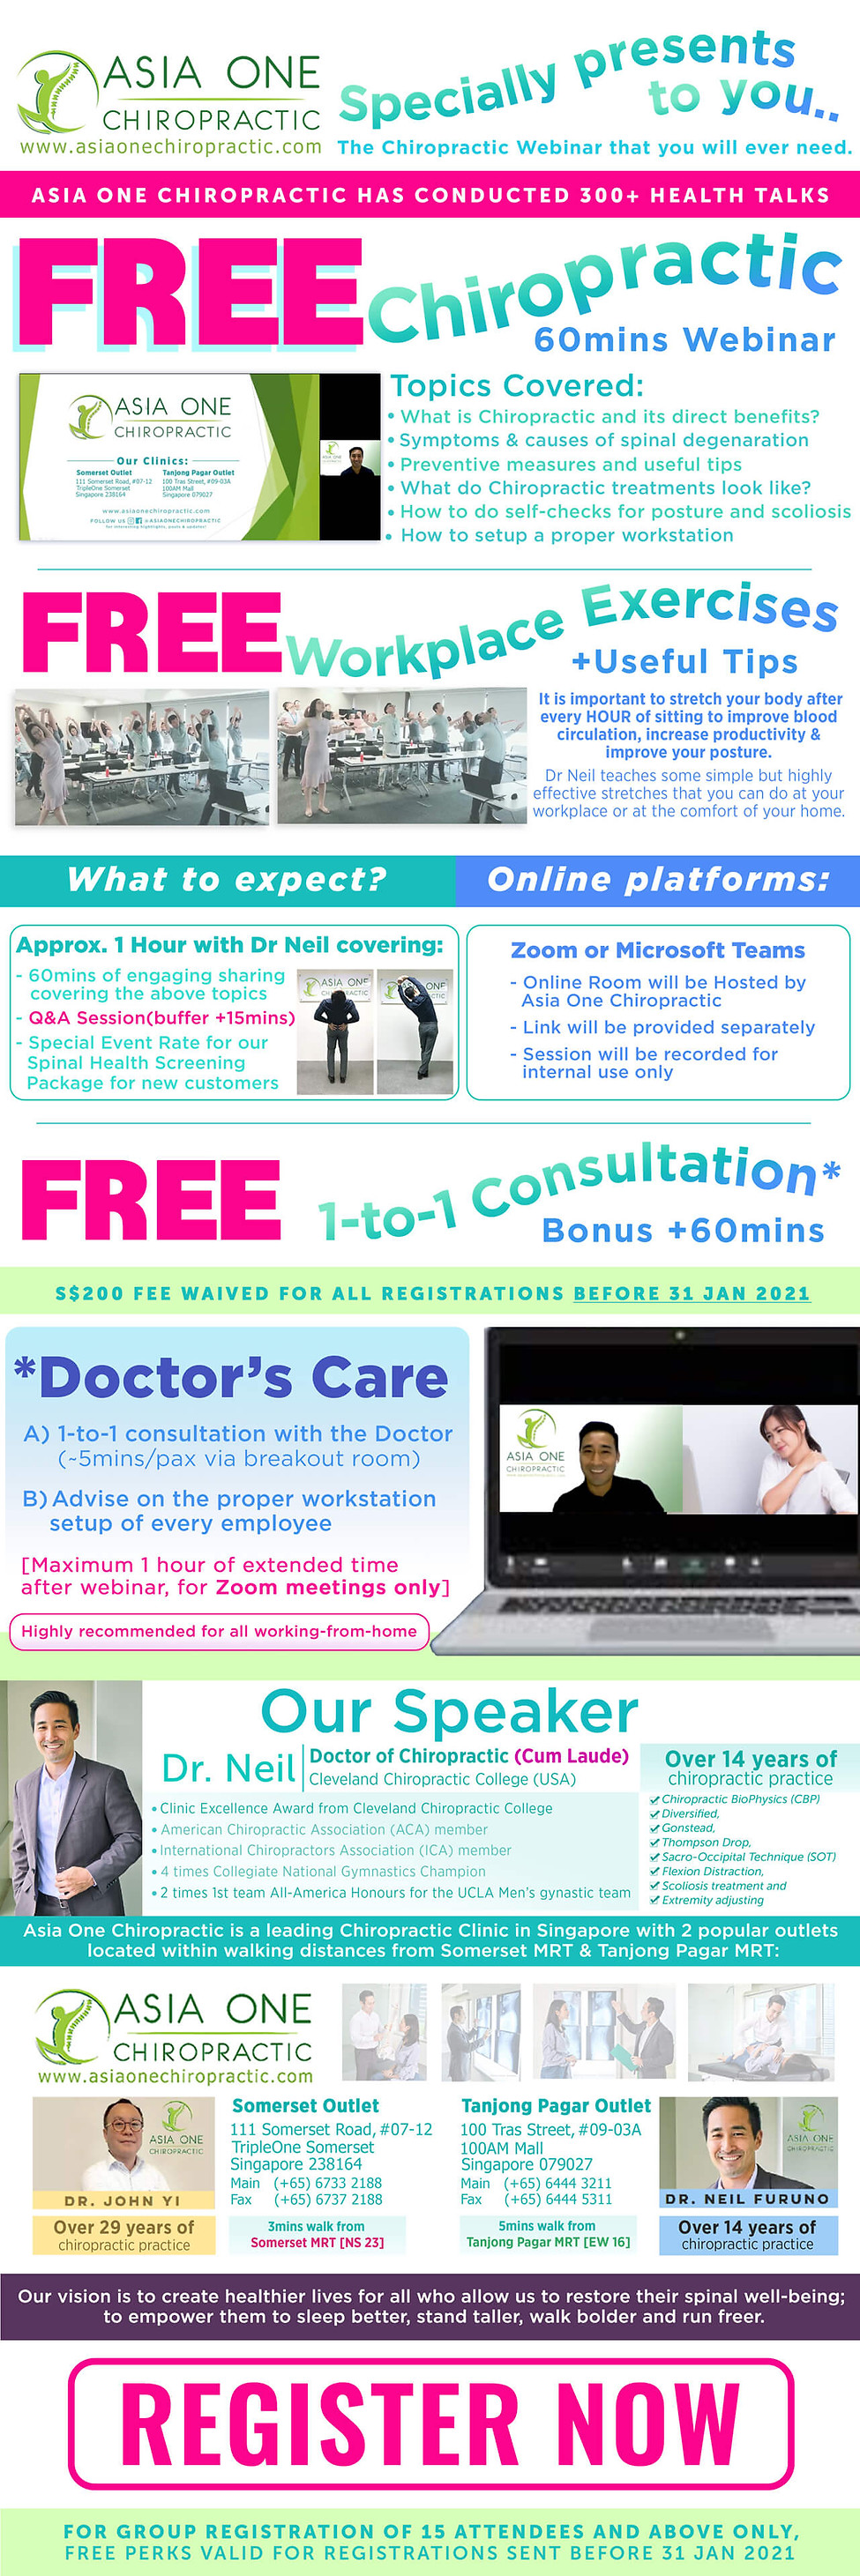 [By Invite only] FREE Chiropractic Webin